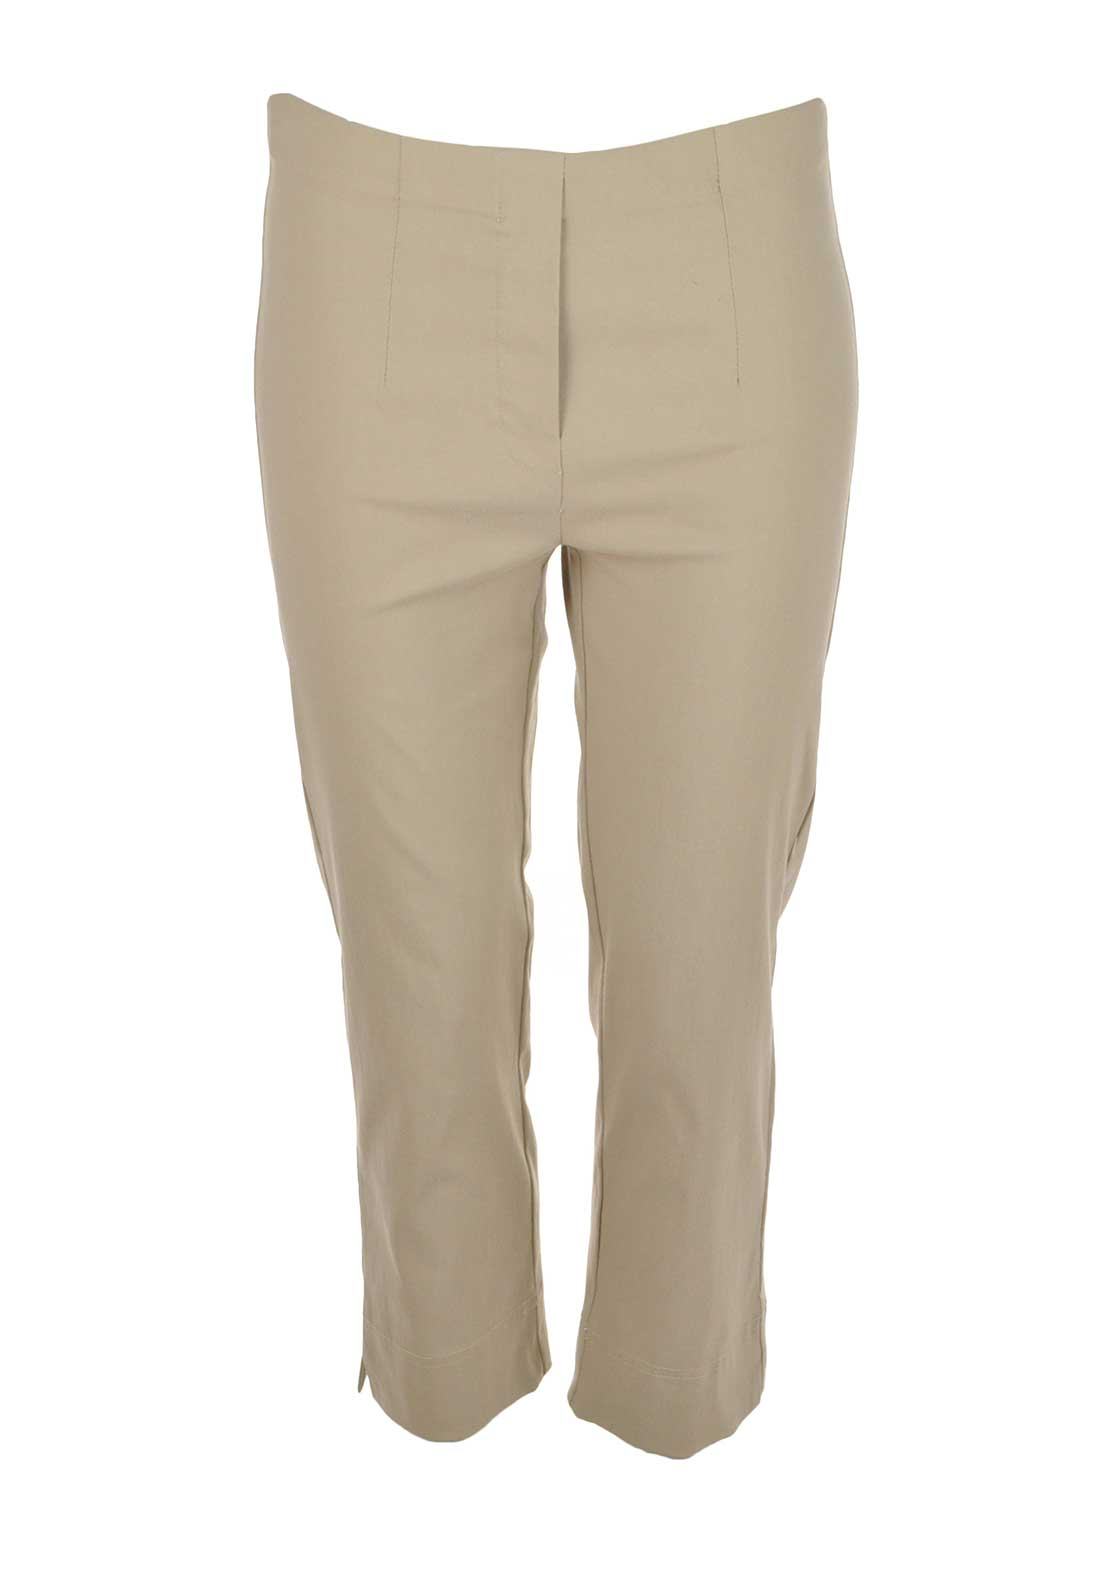 d.e.c.k. by Decollage Slim Leg Cropped Trousers, Sand